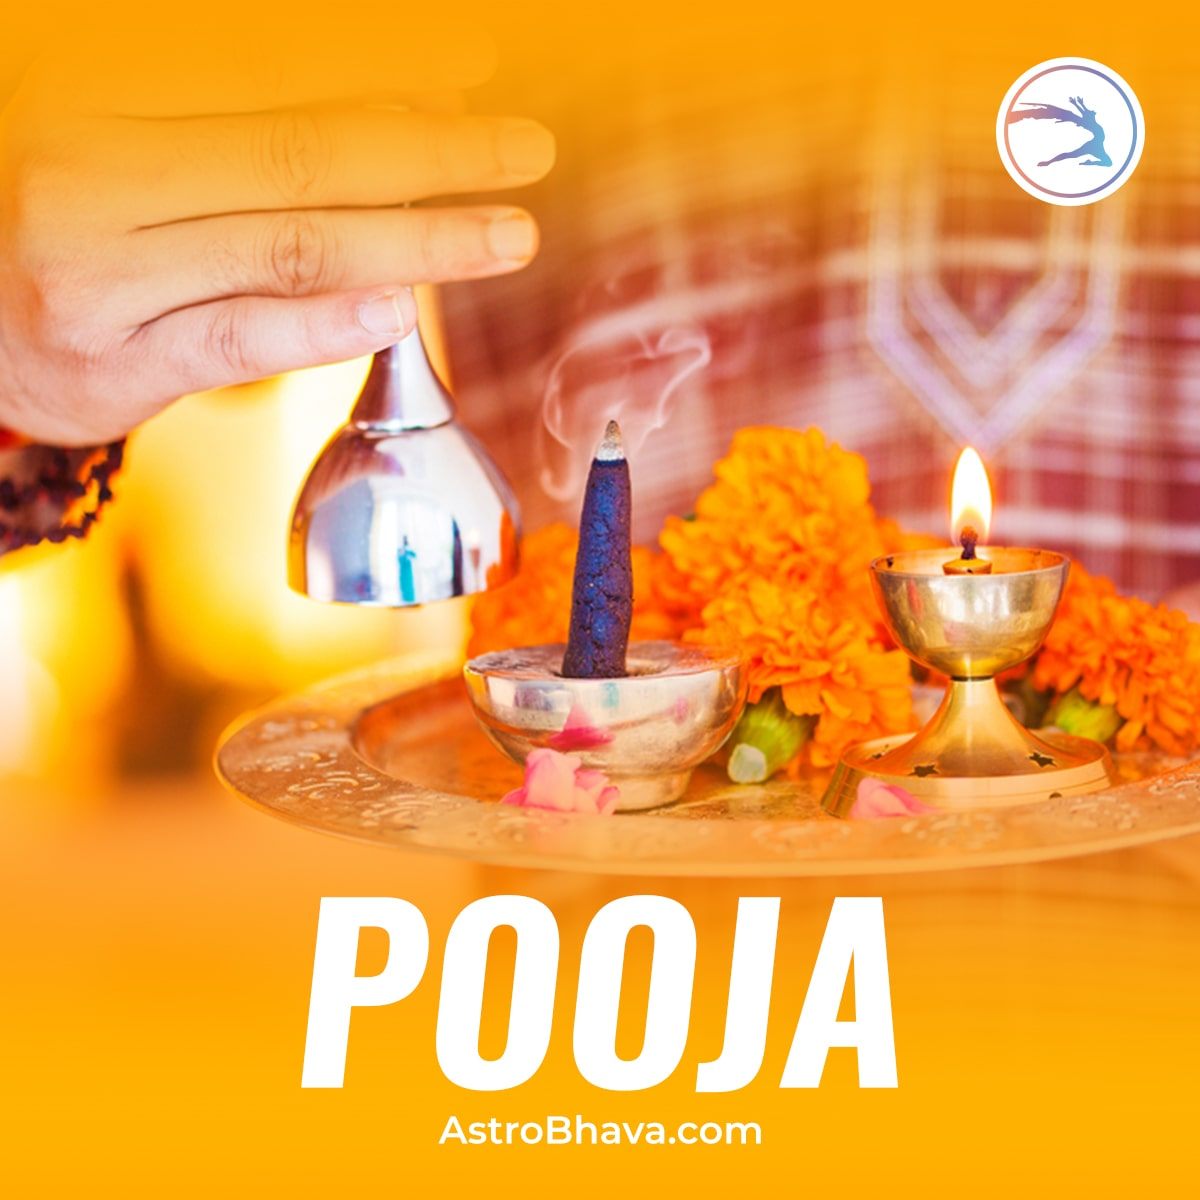 Online Puja Services: Vedic Rituals And Indian Astrological Remedy For All Life Problems